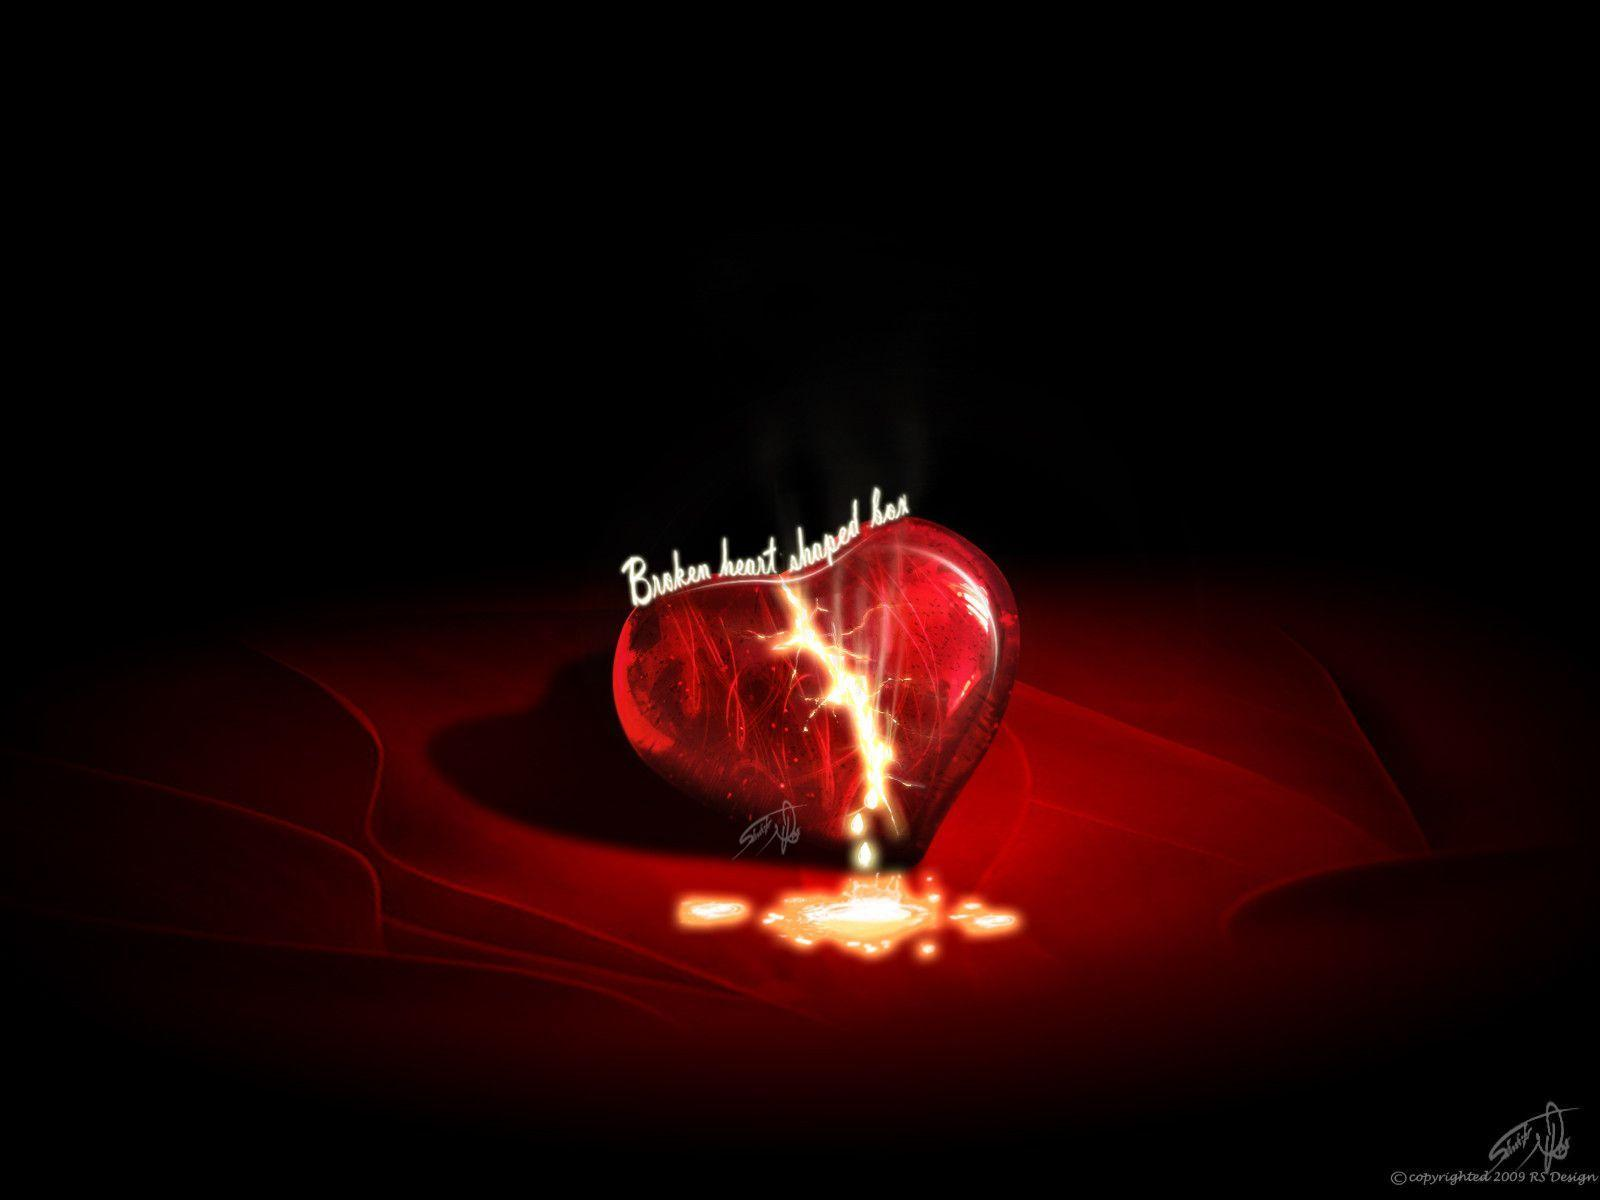 Broken Hearts Wallpapers - Wallpaper Cave